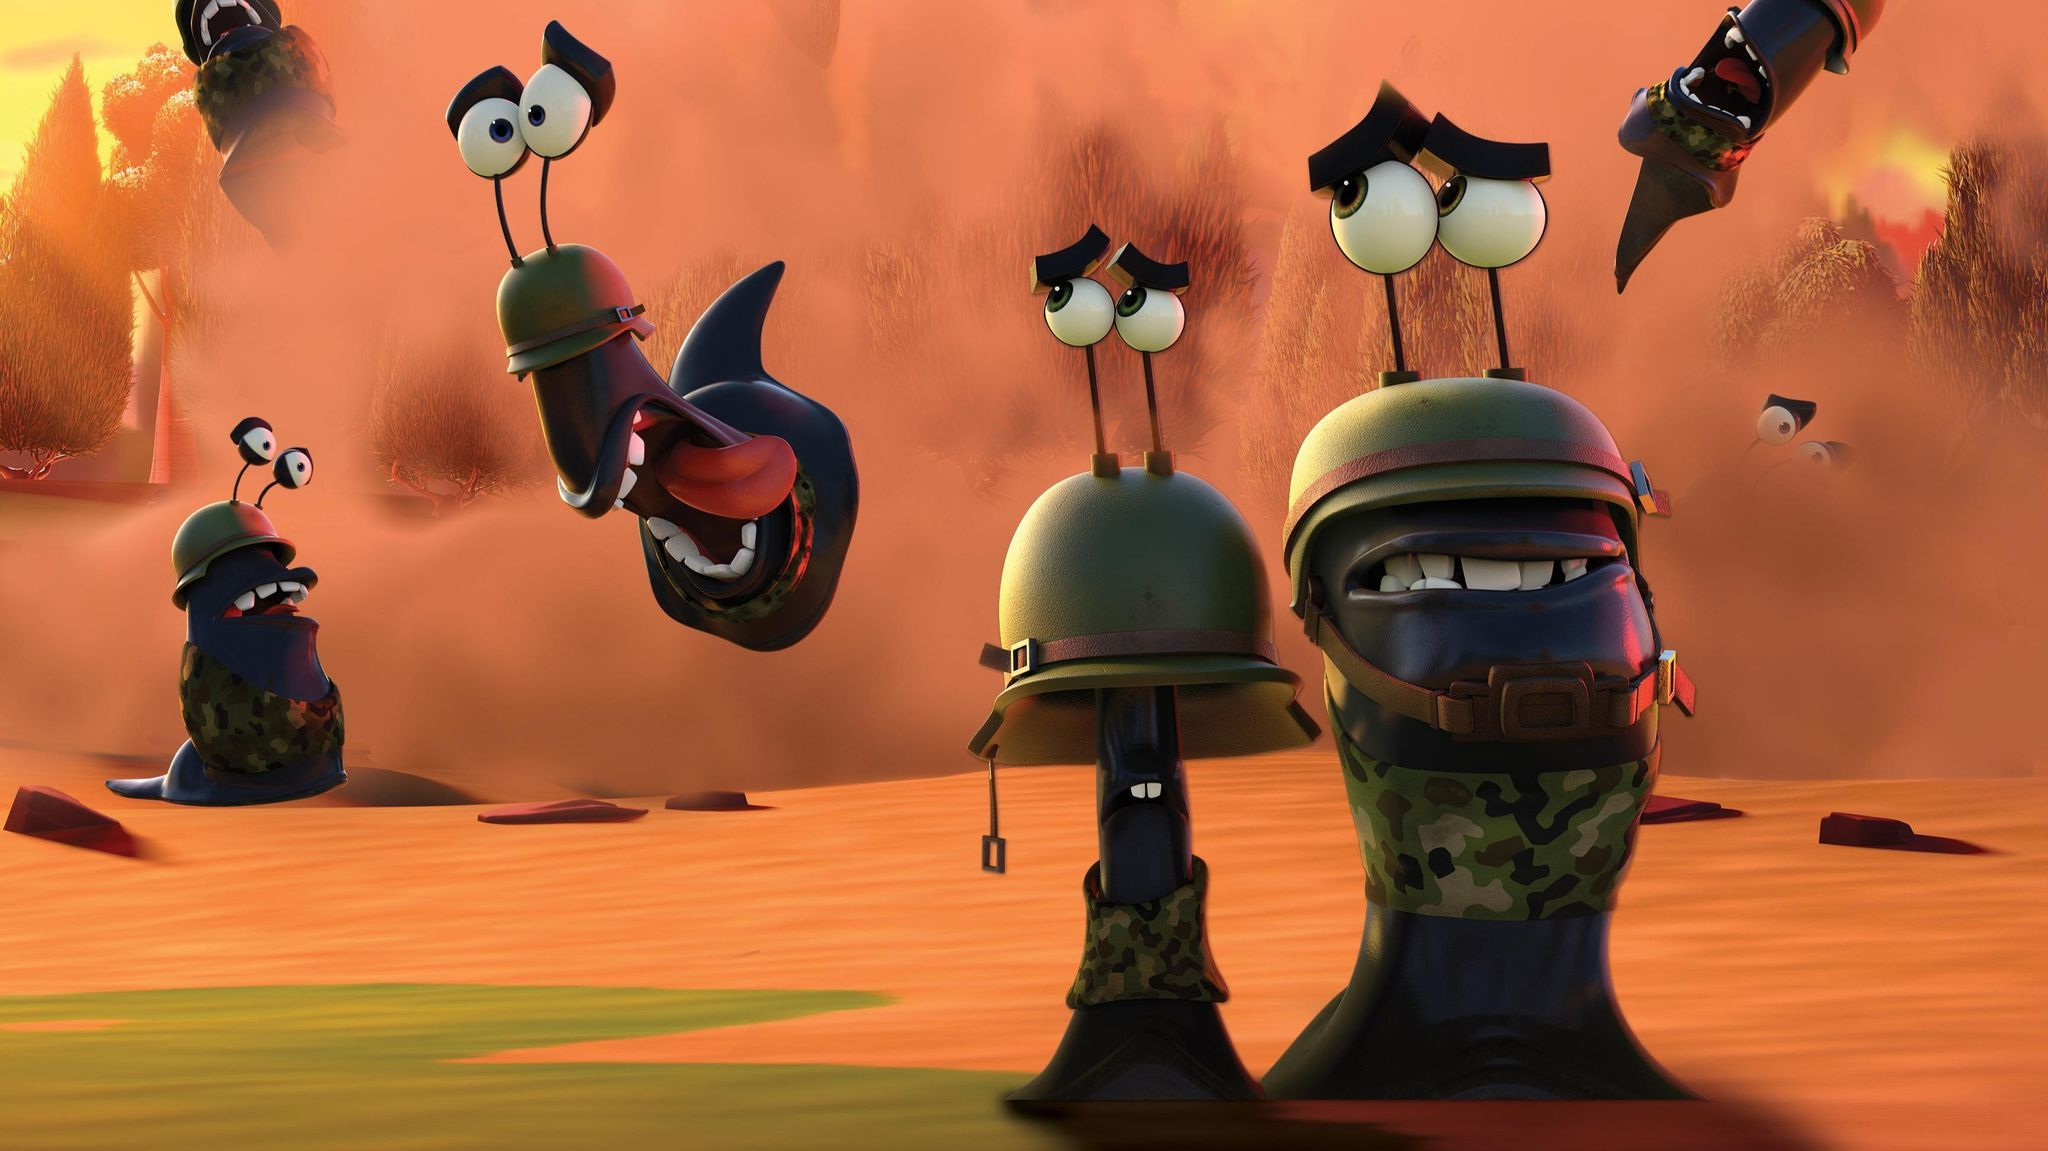 Mobile video game maker Seriously is releasing an animated short called Best Fiends Boot Camp.